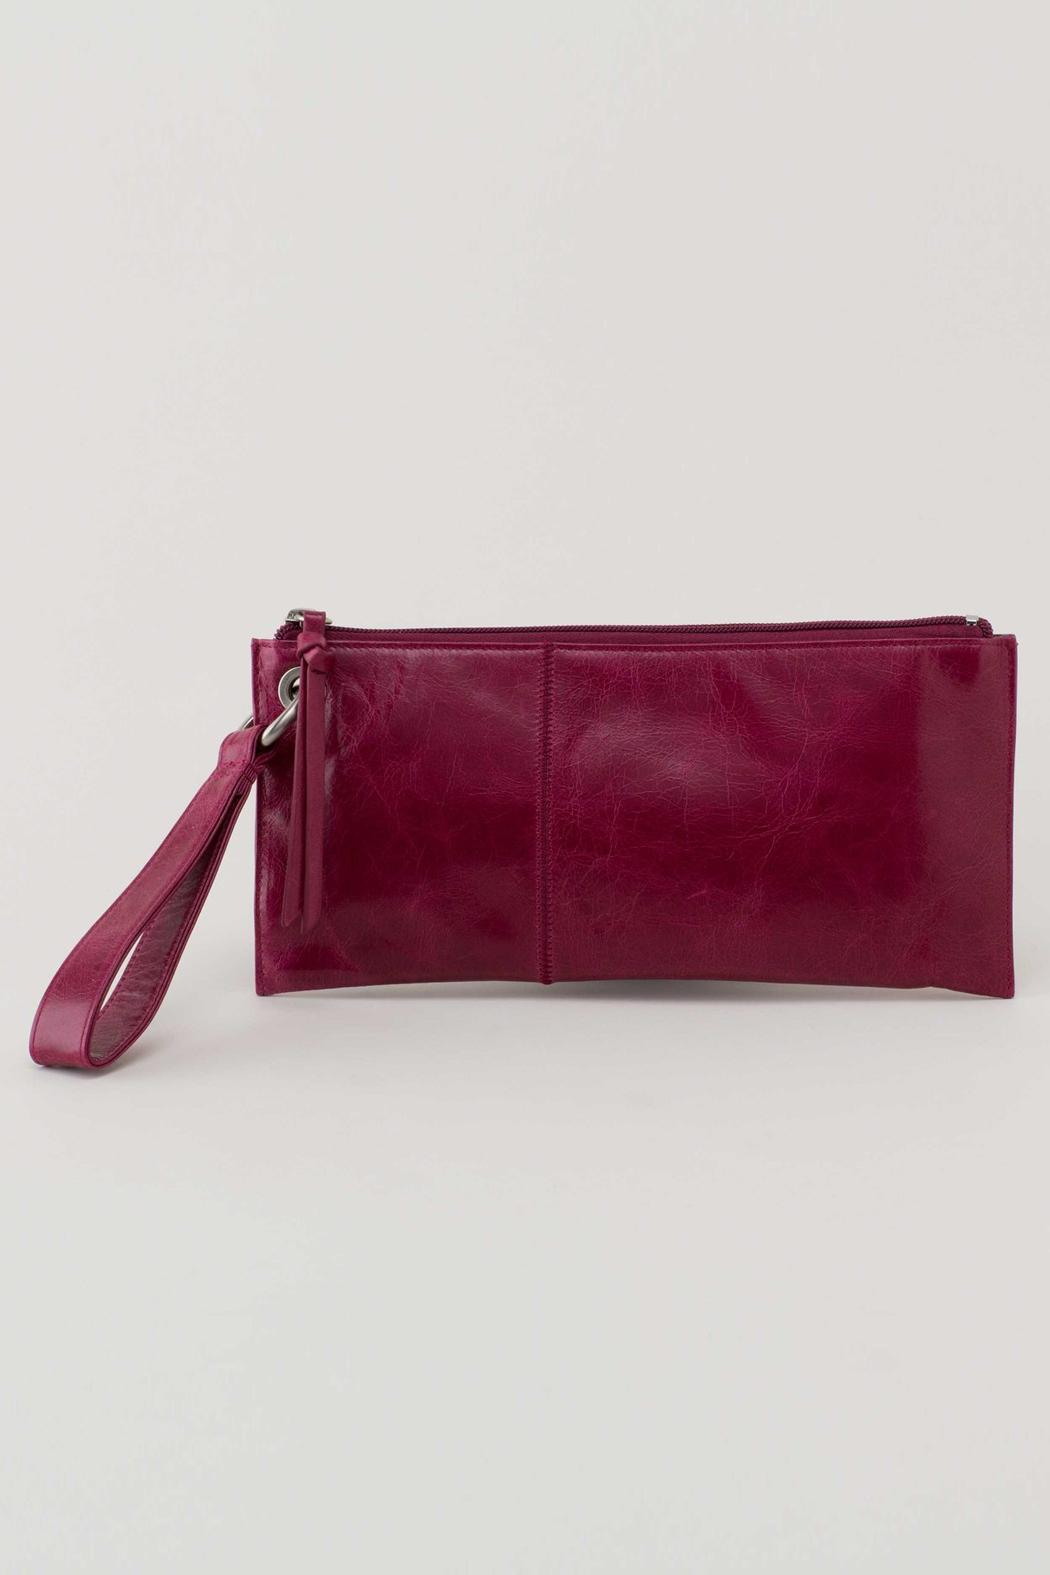 VIDA Statement Clutch - Deep red by VIDA Ku59AsZ